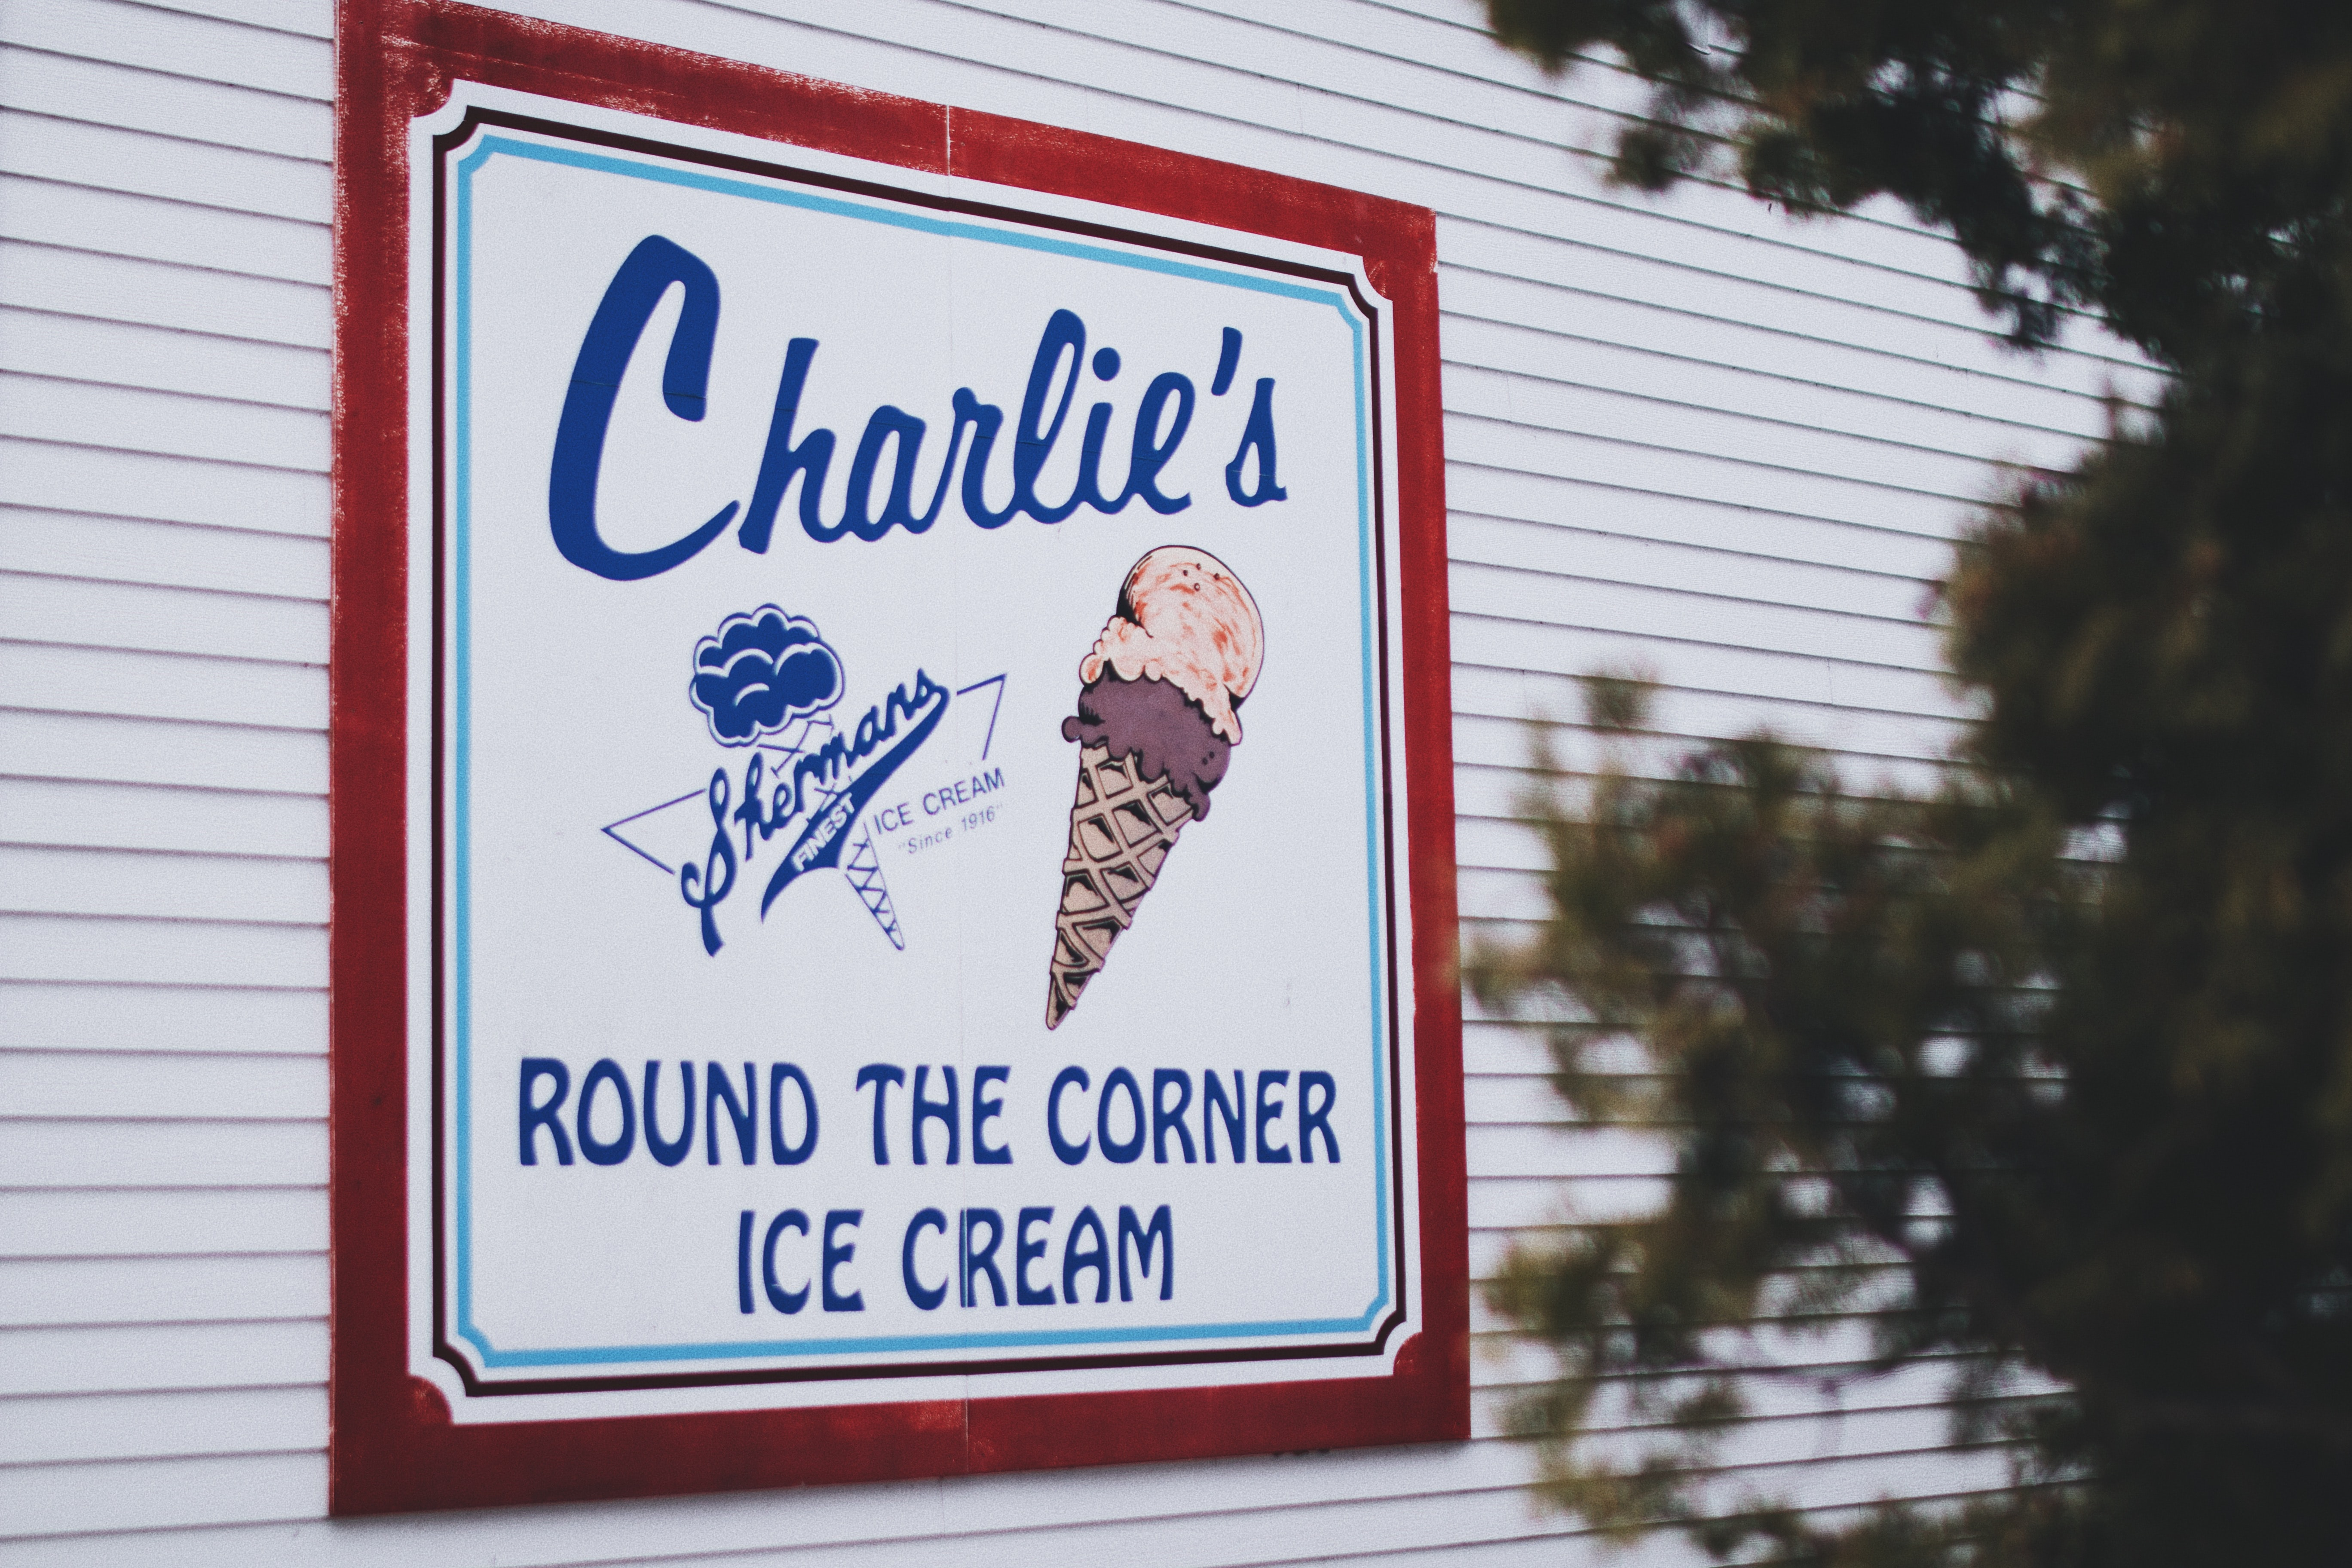 Charlie's round the corner ice cream signage